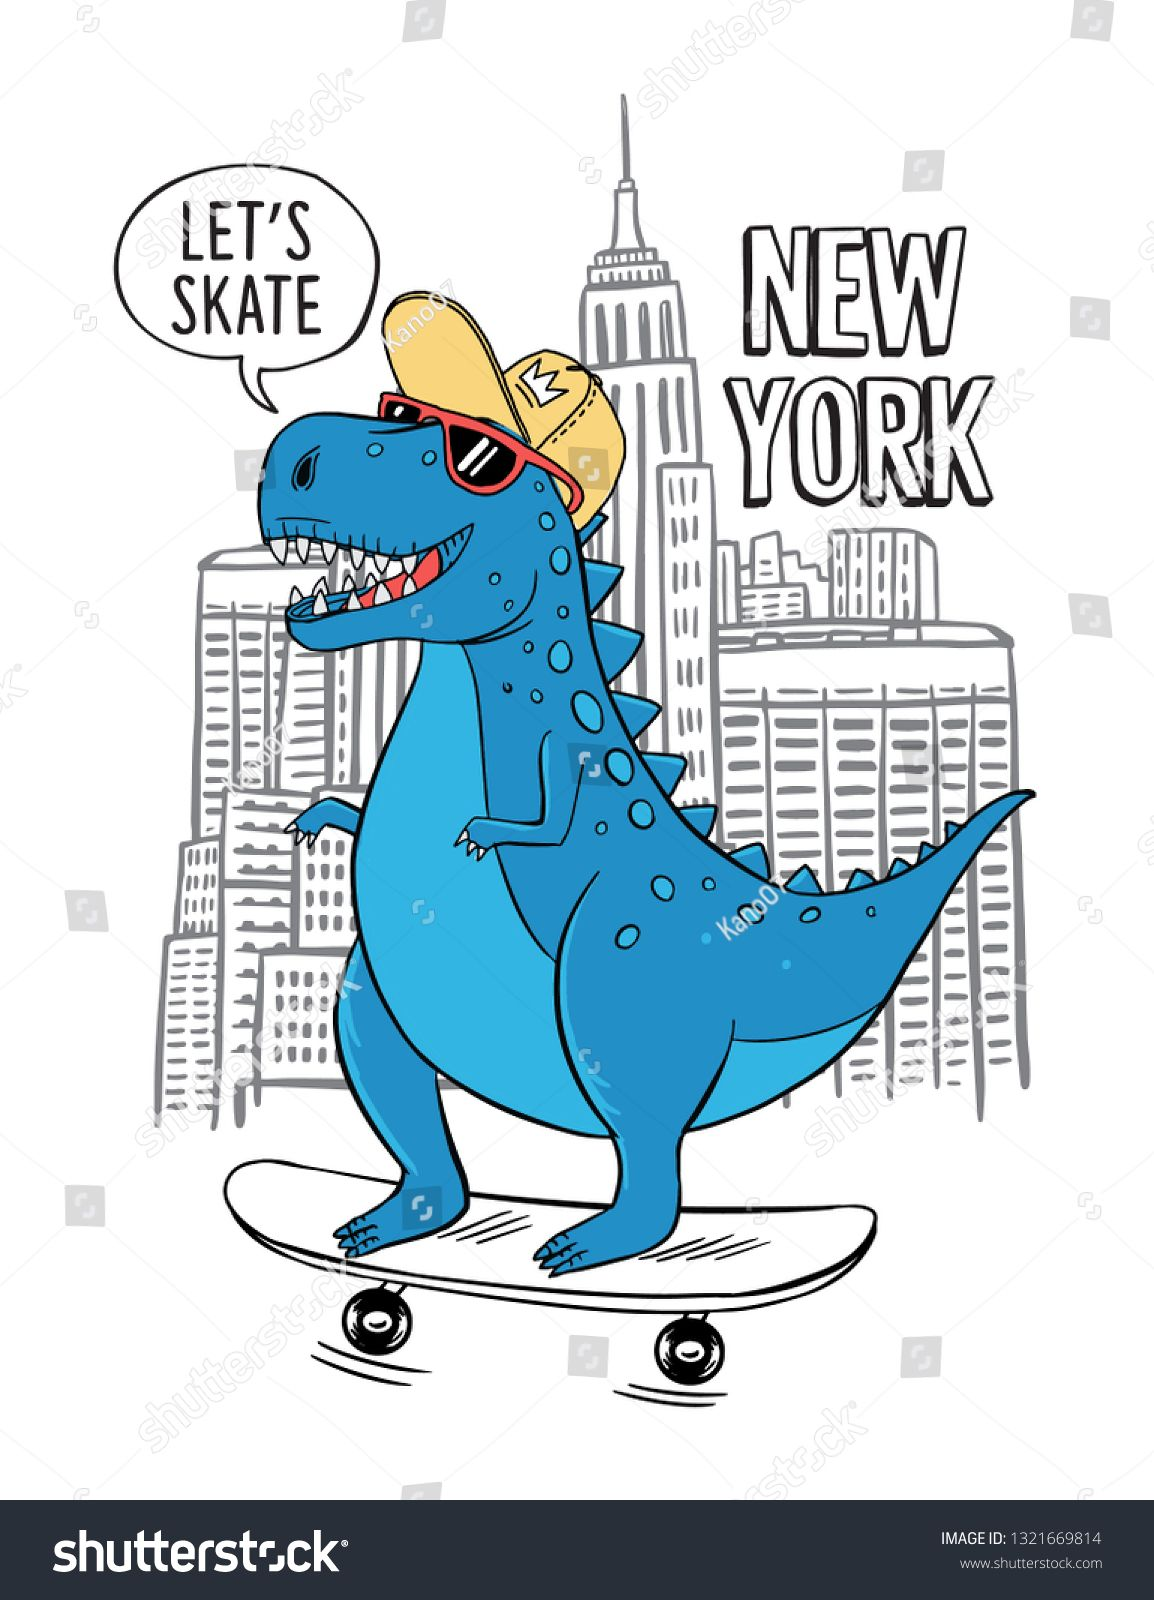 Skater Dinosaur vector illustration with cool slogans. For t-shirt prints and other uses. #dinosaurillustration